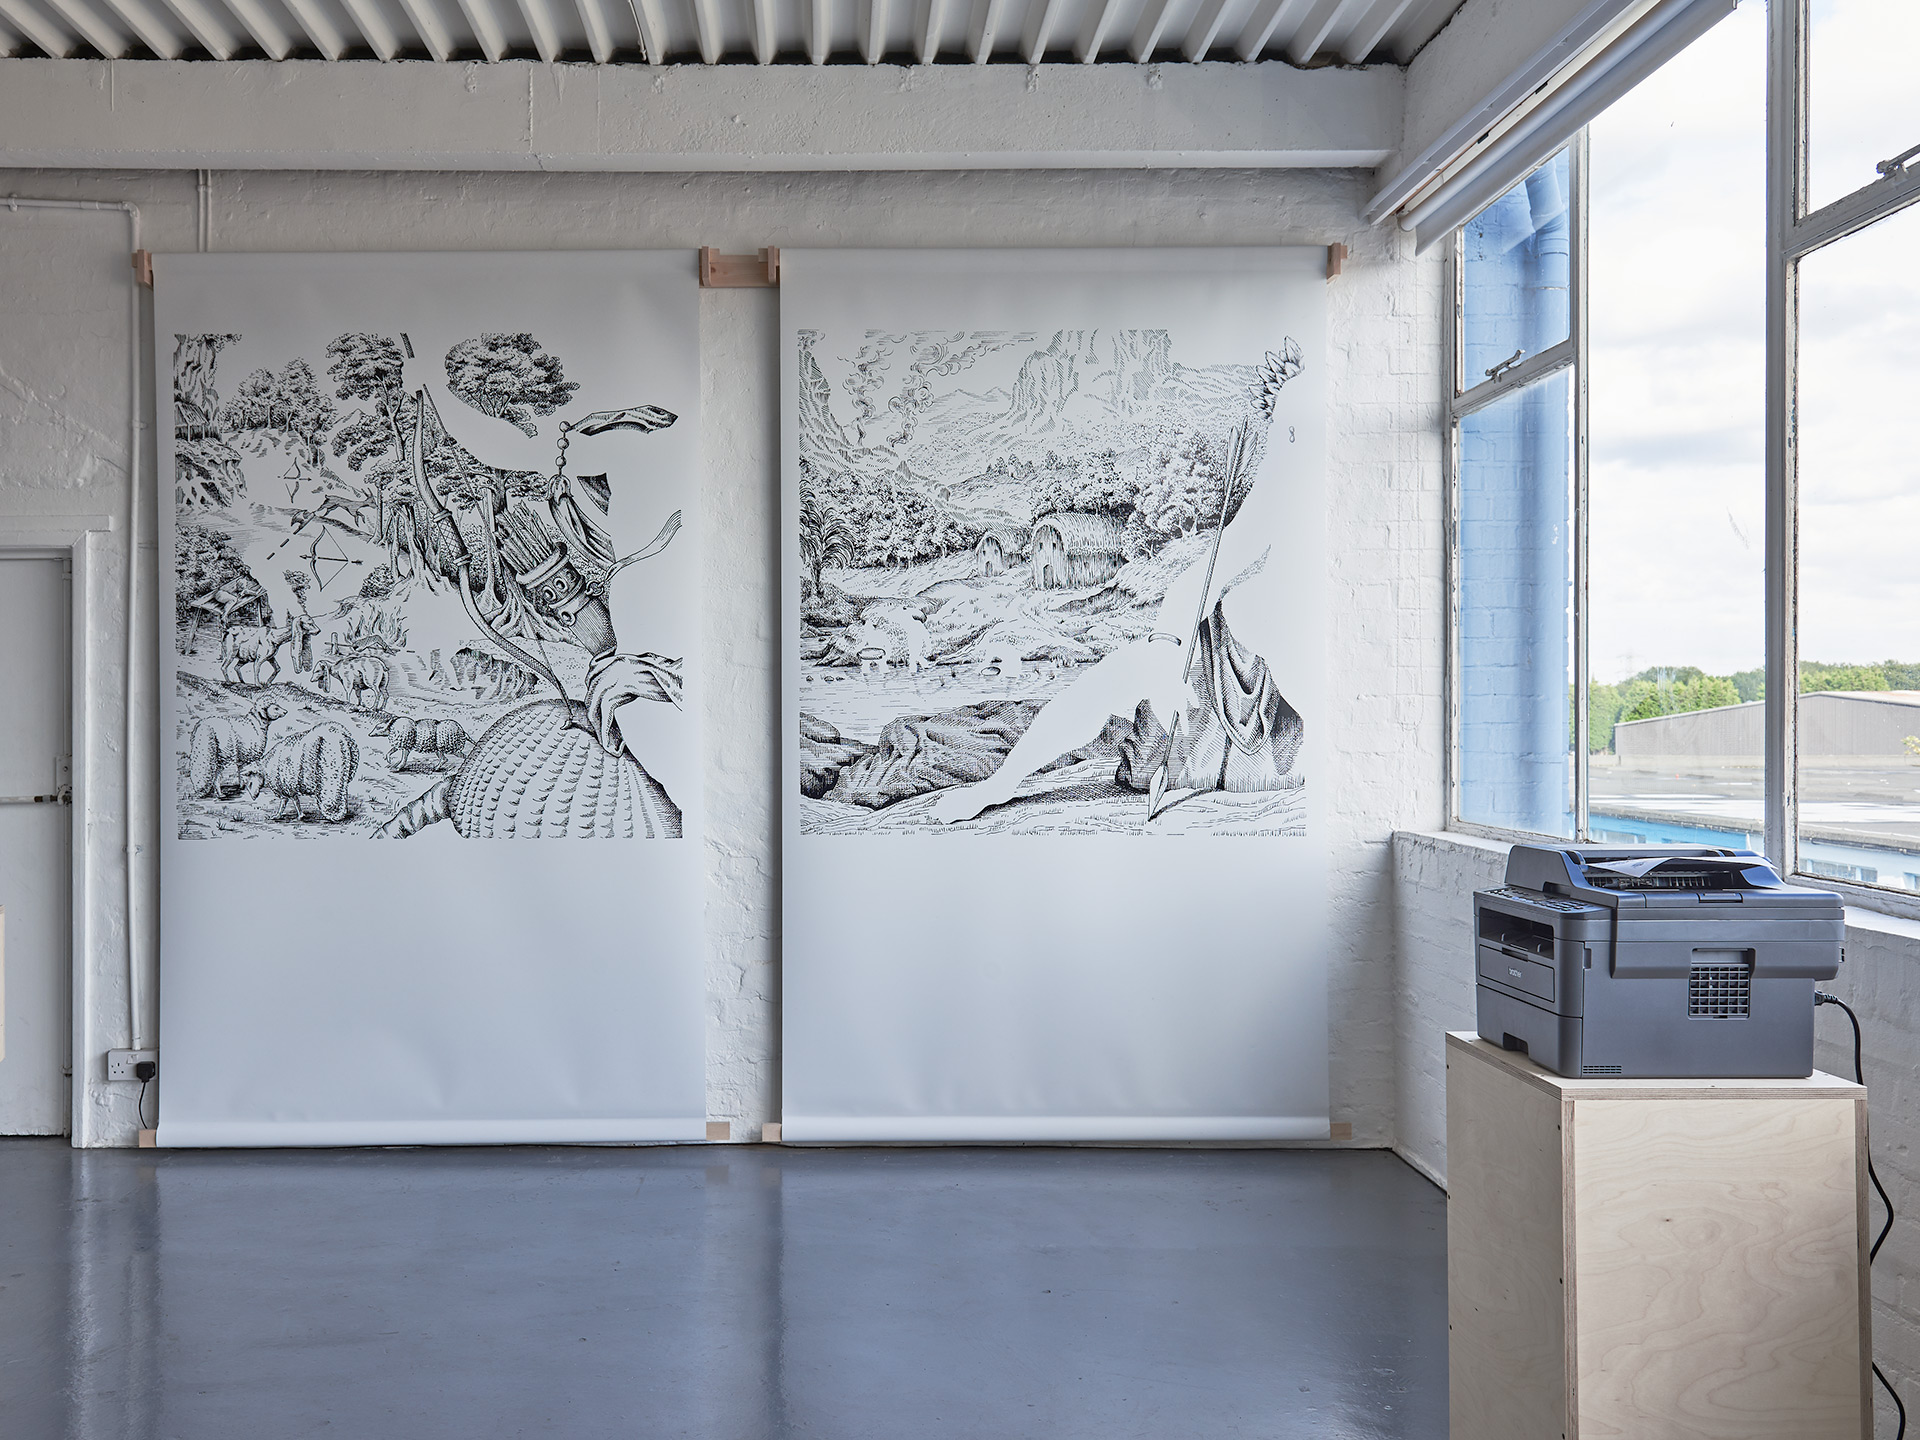 Two large printed drawings hang from a white brick wall, a printer on a plinth can be seen in the foreground.